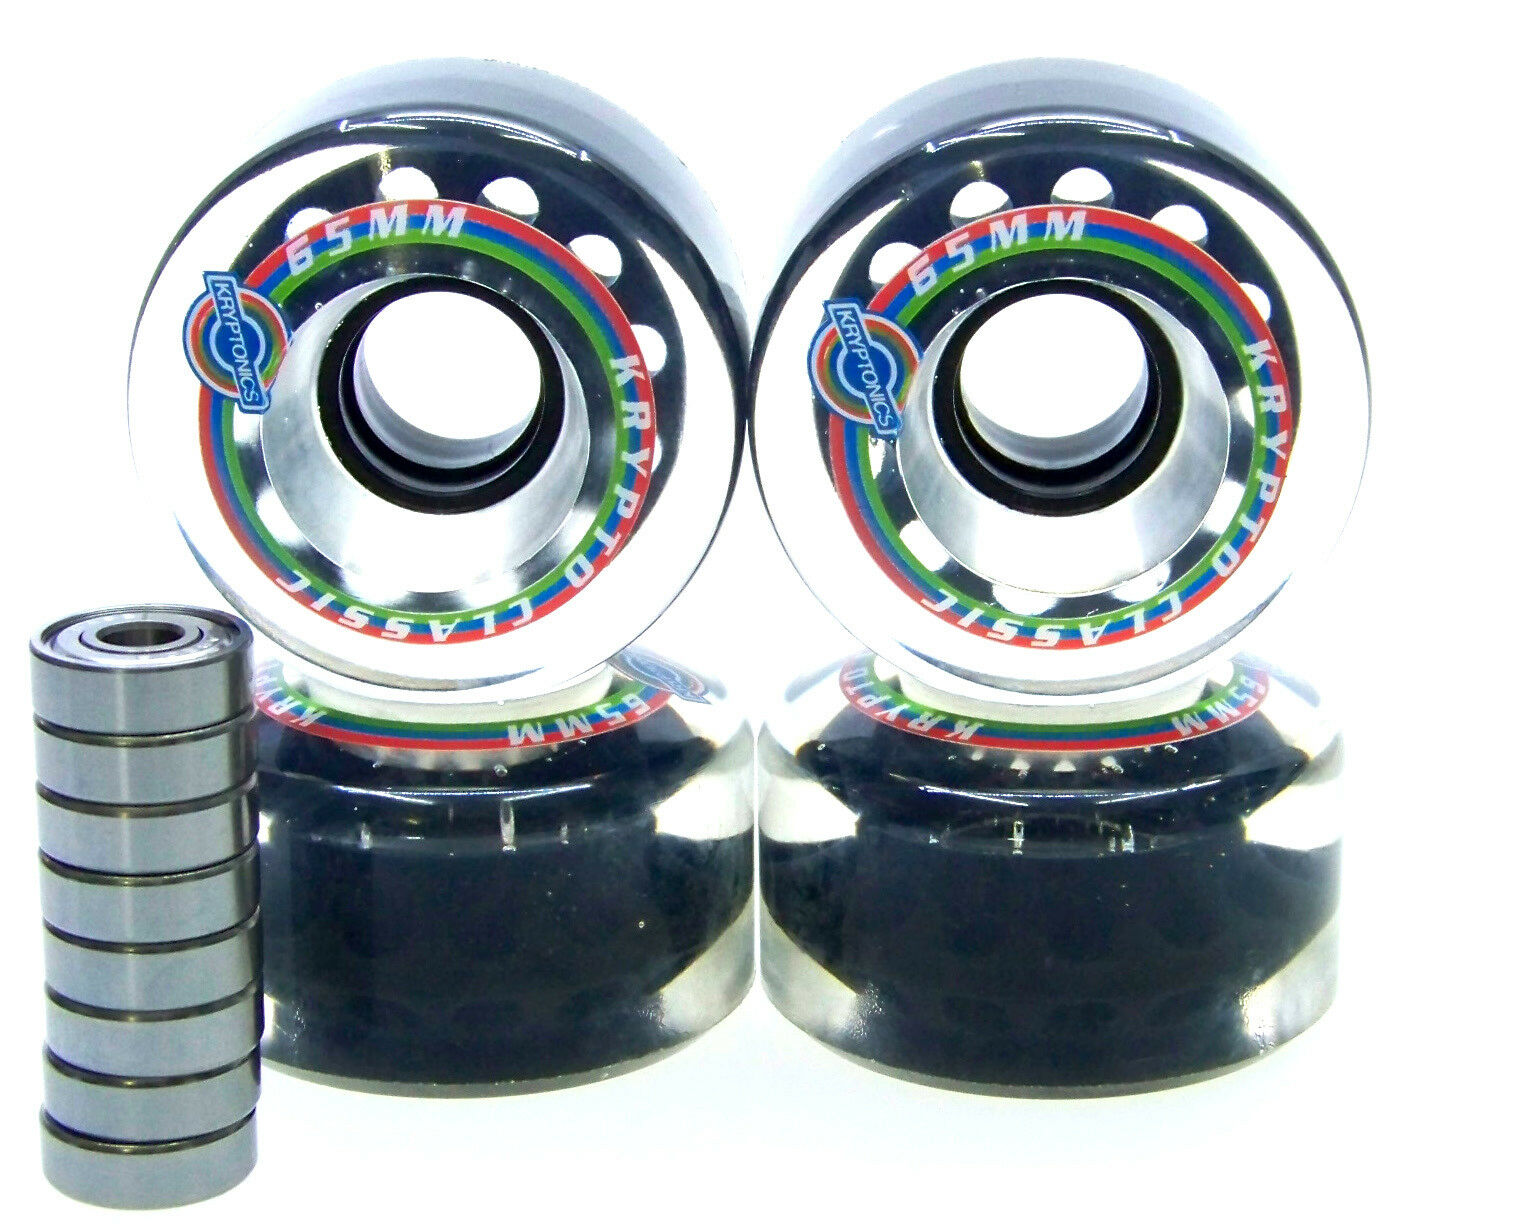 Kryptonics Classic 65mm   78A Longboard wheels  bearing ABEC 5 7 9 CLEAR  with 100% quality and %100 service